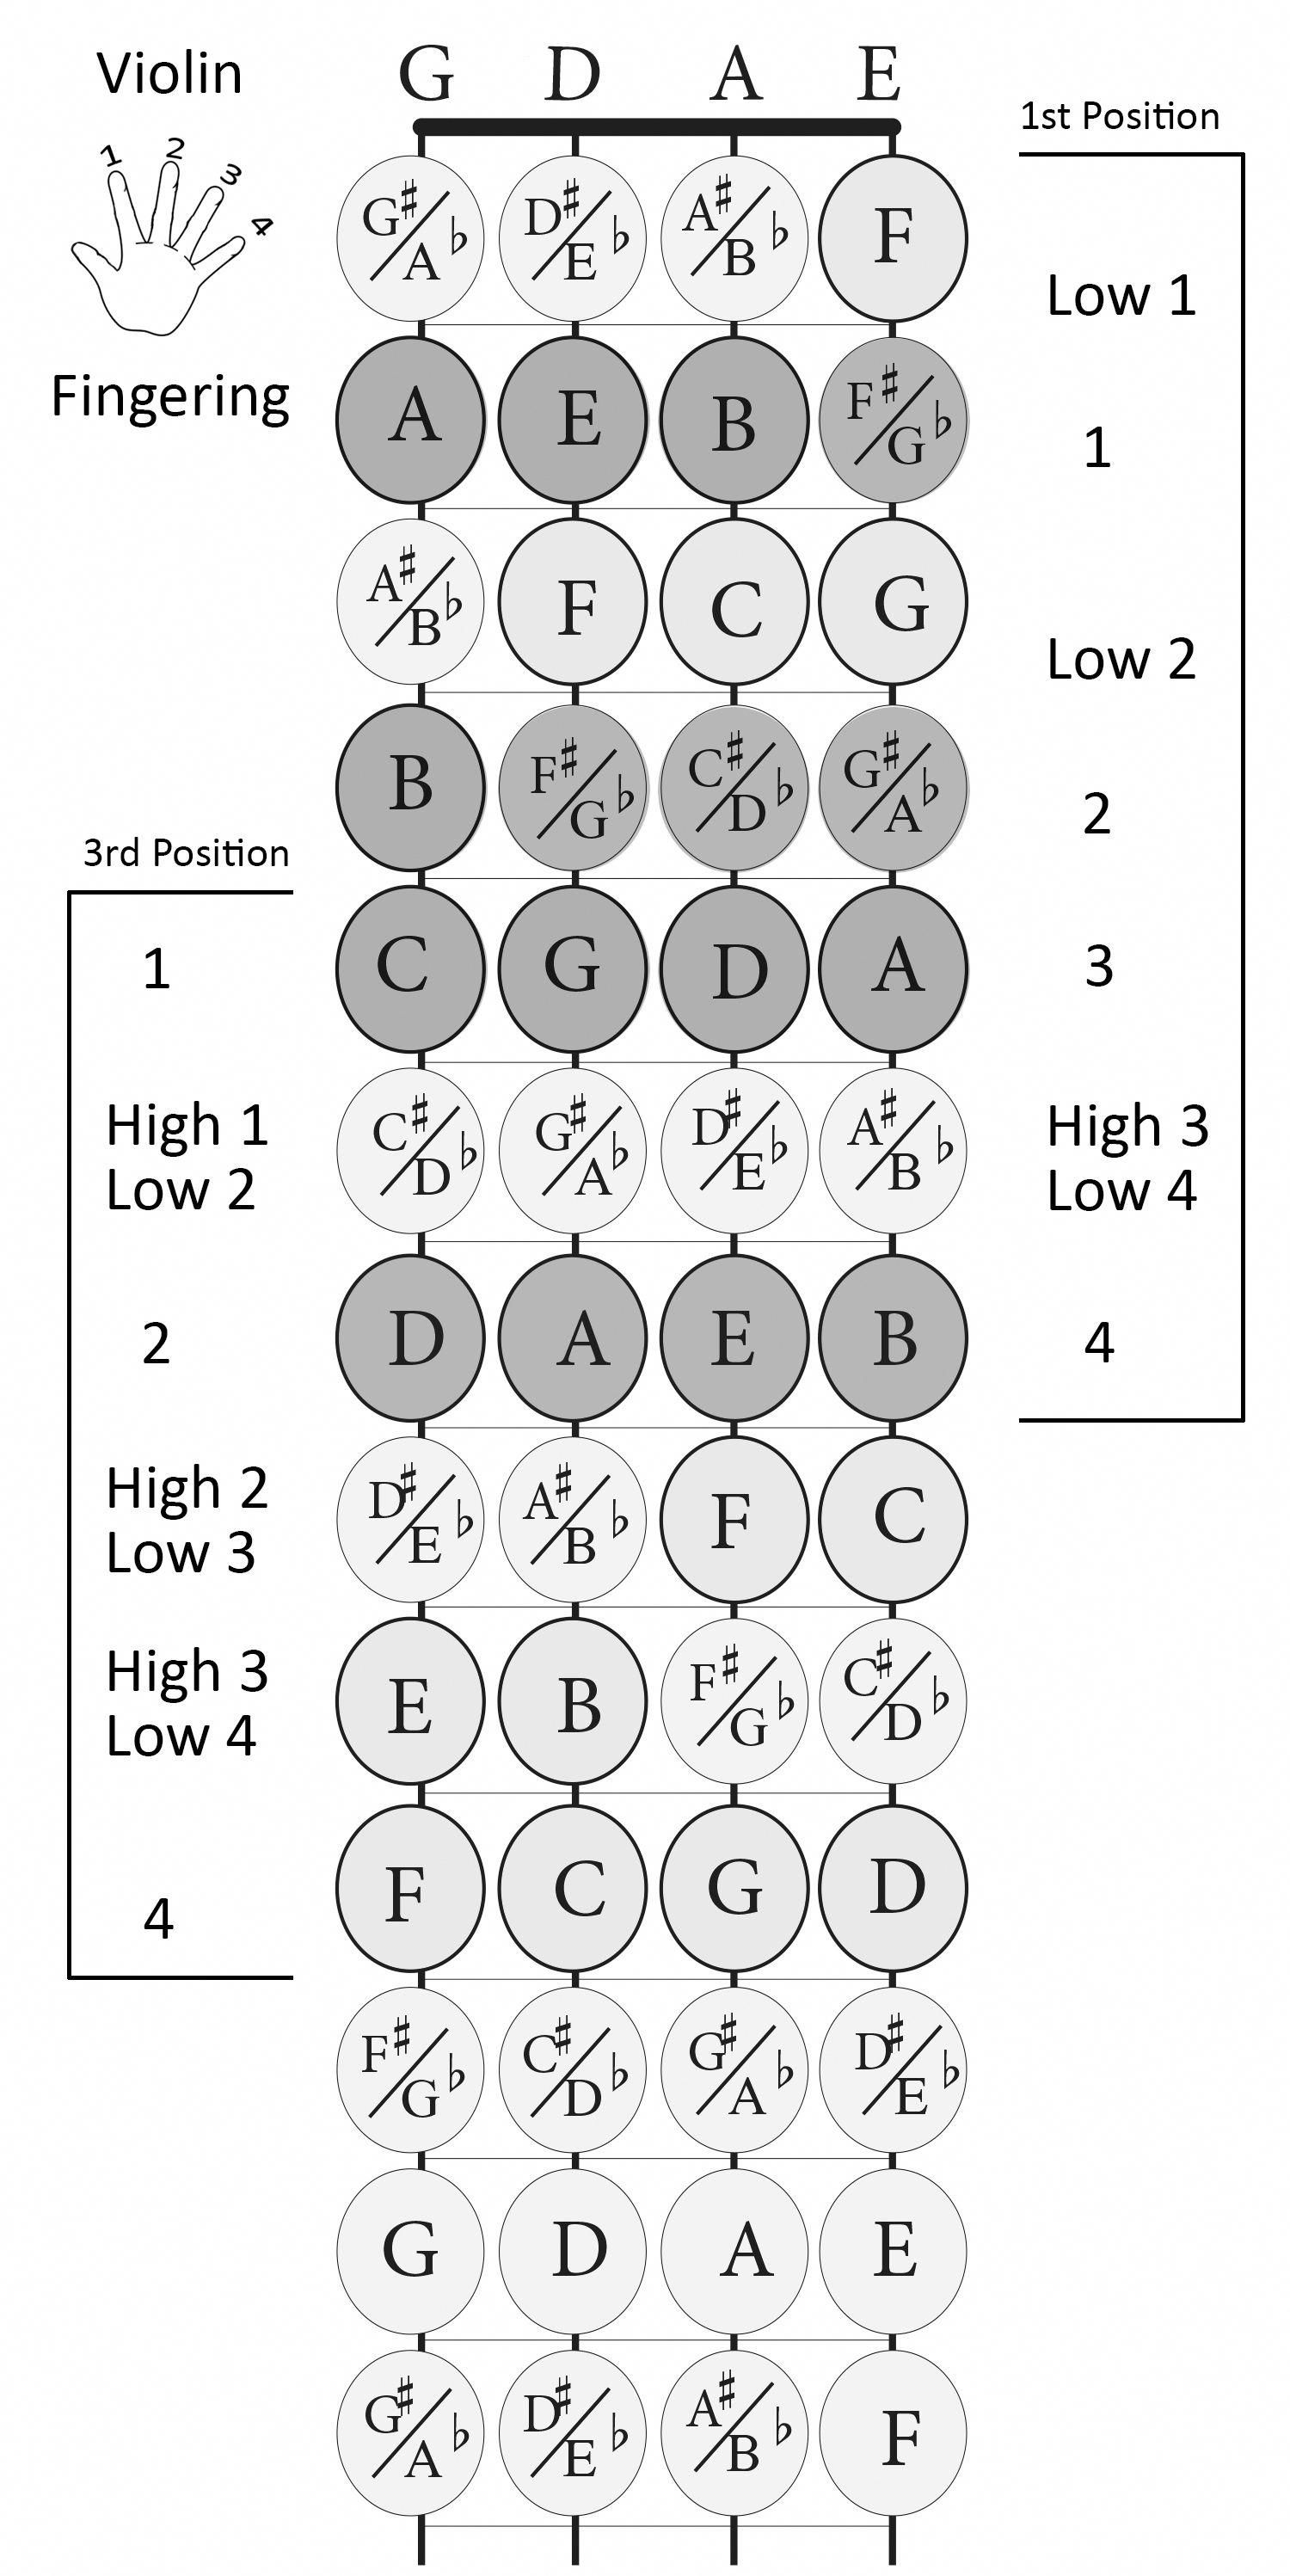 Violin Fingerboard With Notes And Finger Numbers